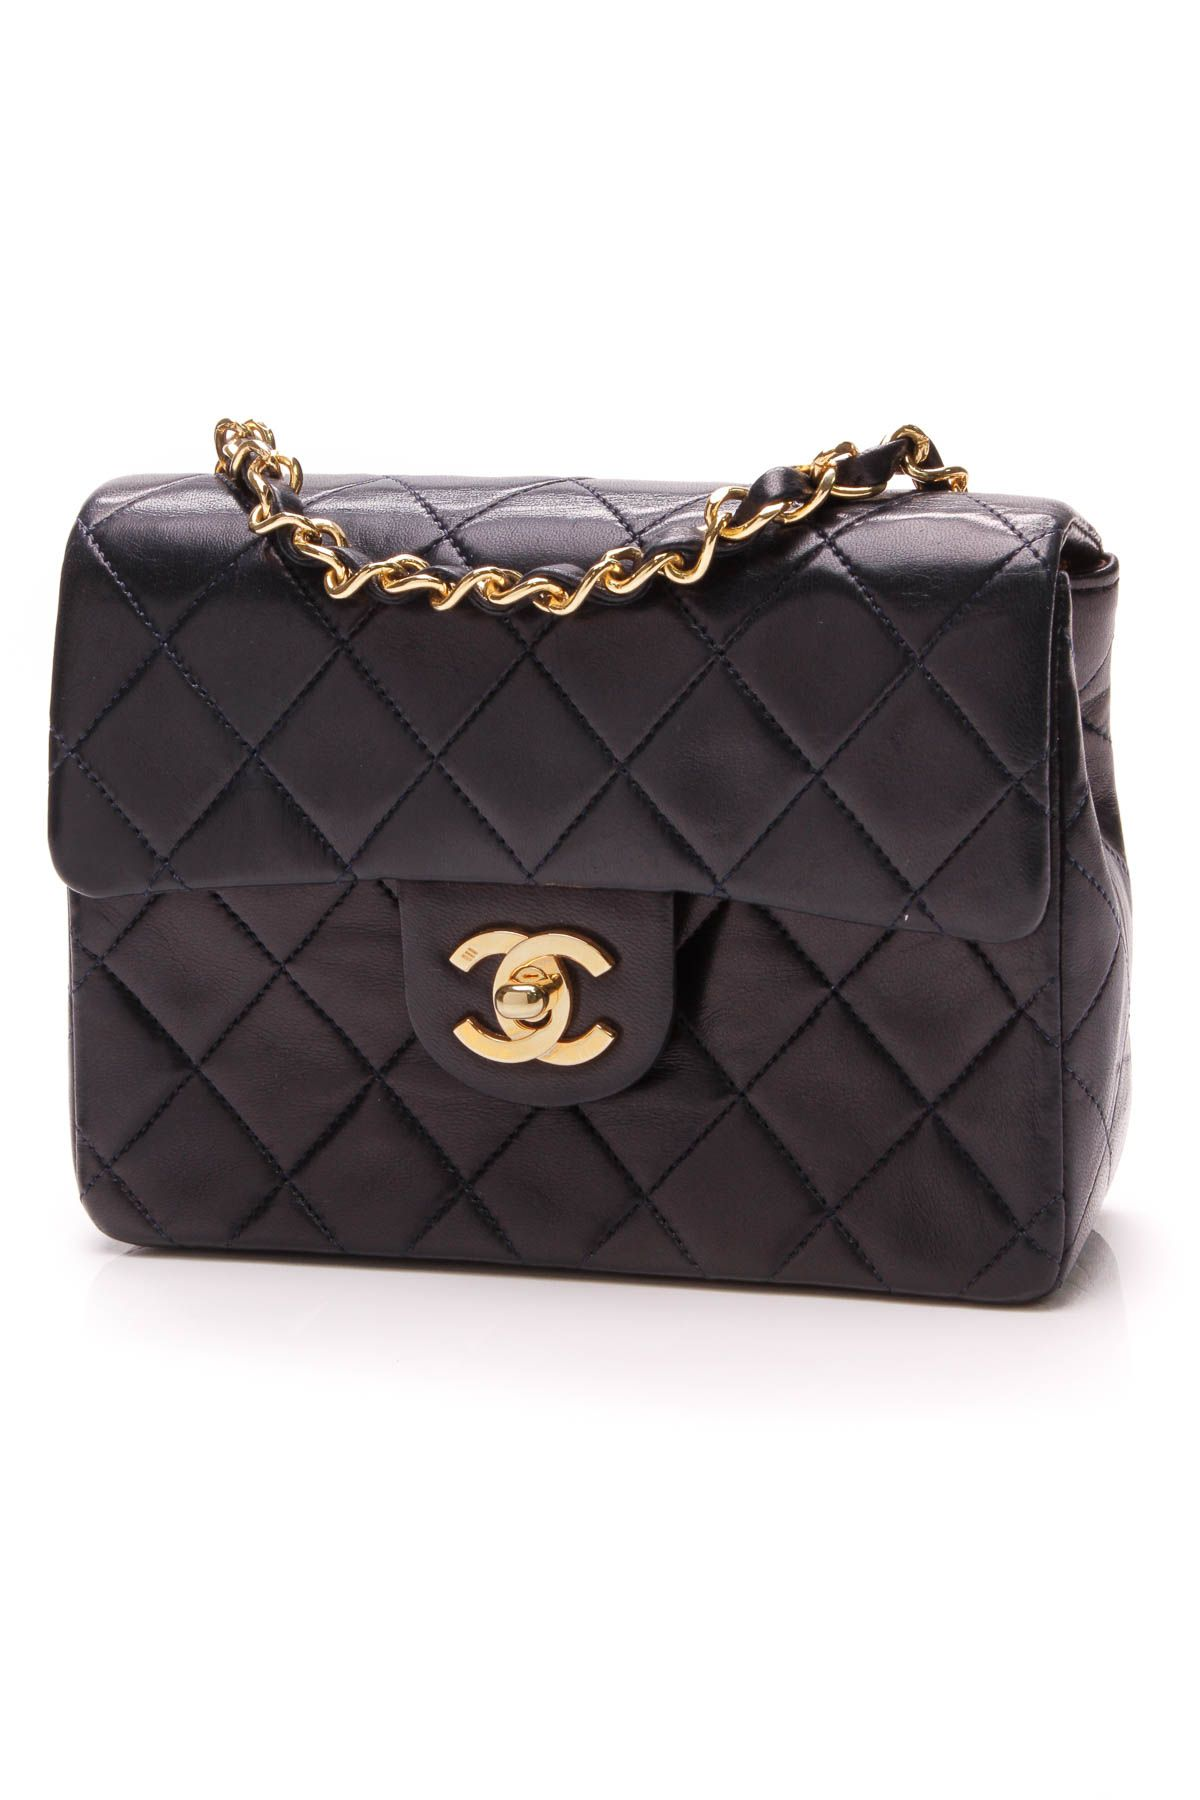 0df6036d0476 Vintage Mini Flap Bag - Navy Lambskin in 2019 | Crazy for Coco ...